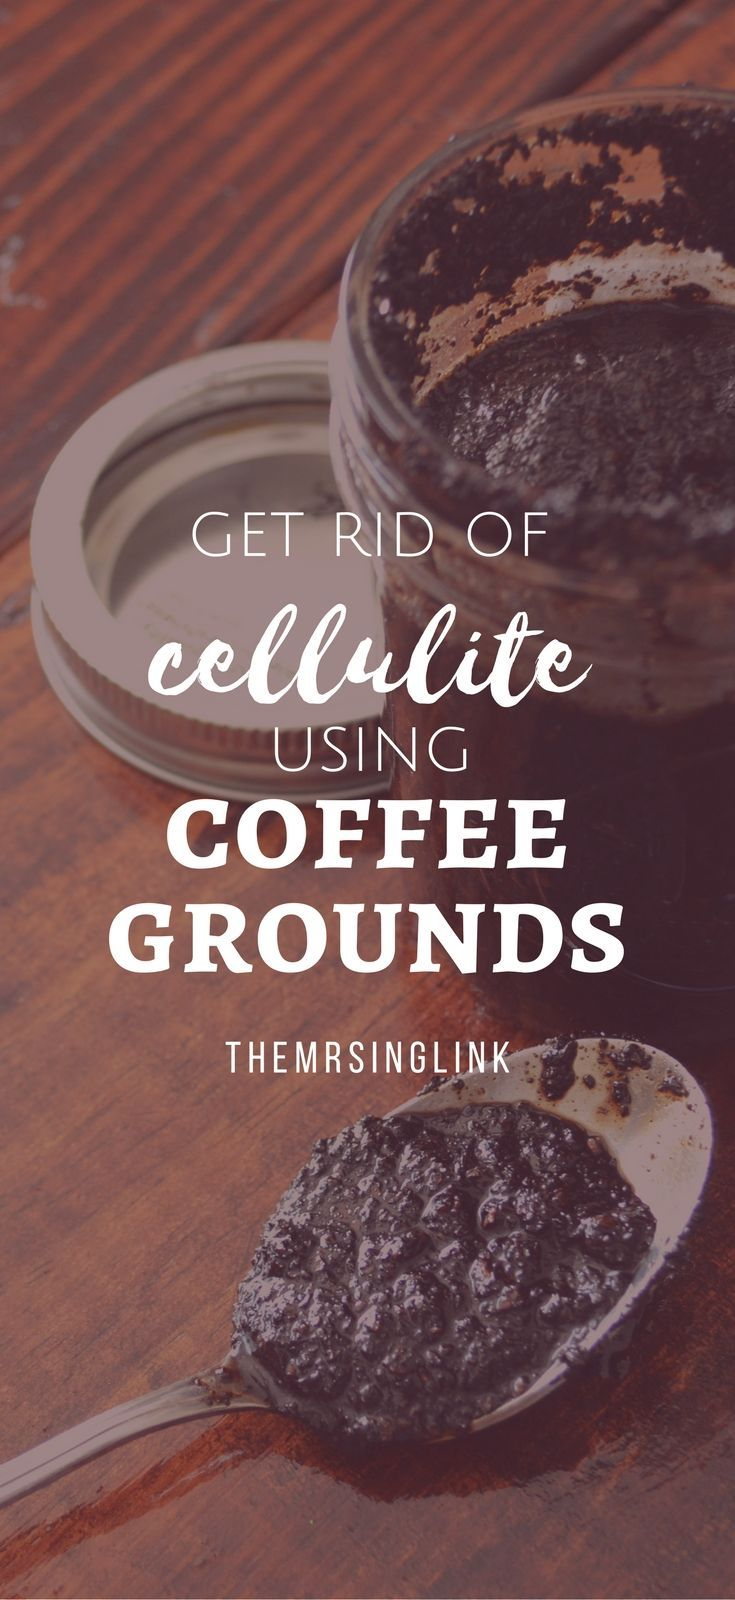 b7da7c38273e8 Get Rid Of Cellulite With Coffee Grounds | Cellulite Pictures ...